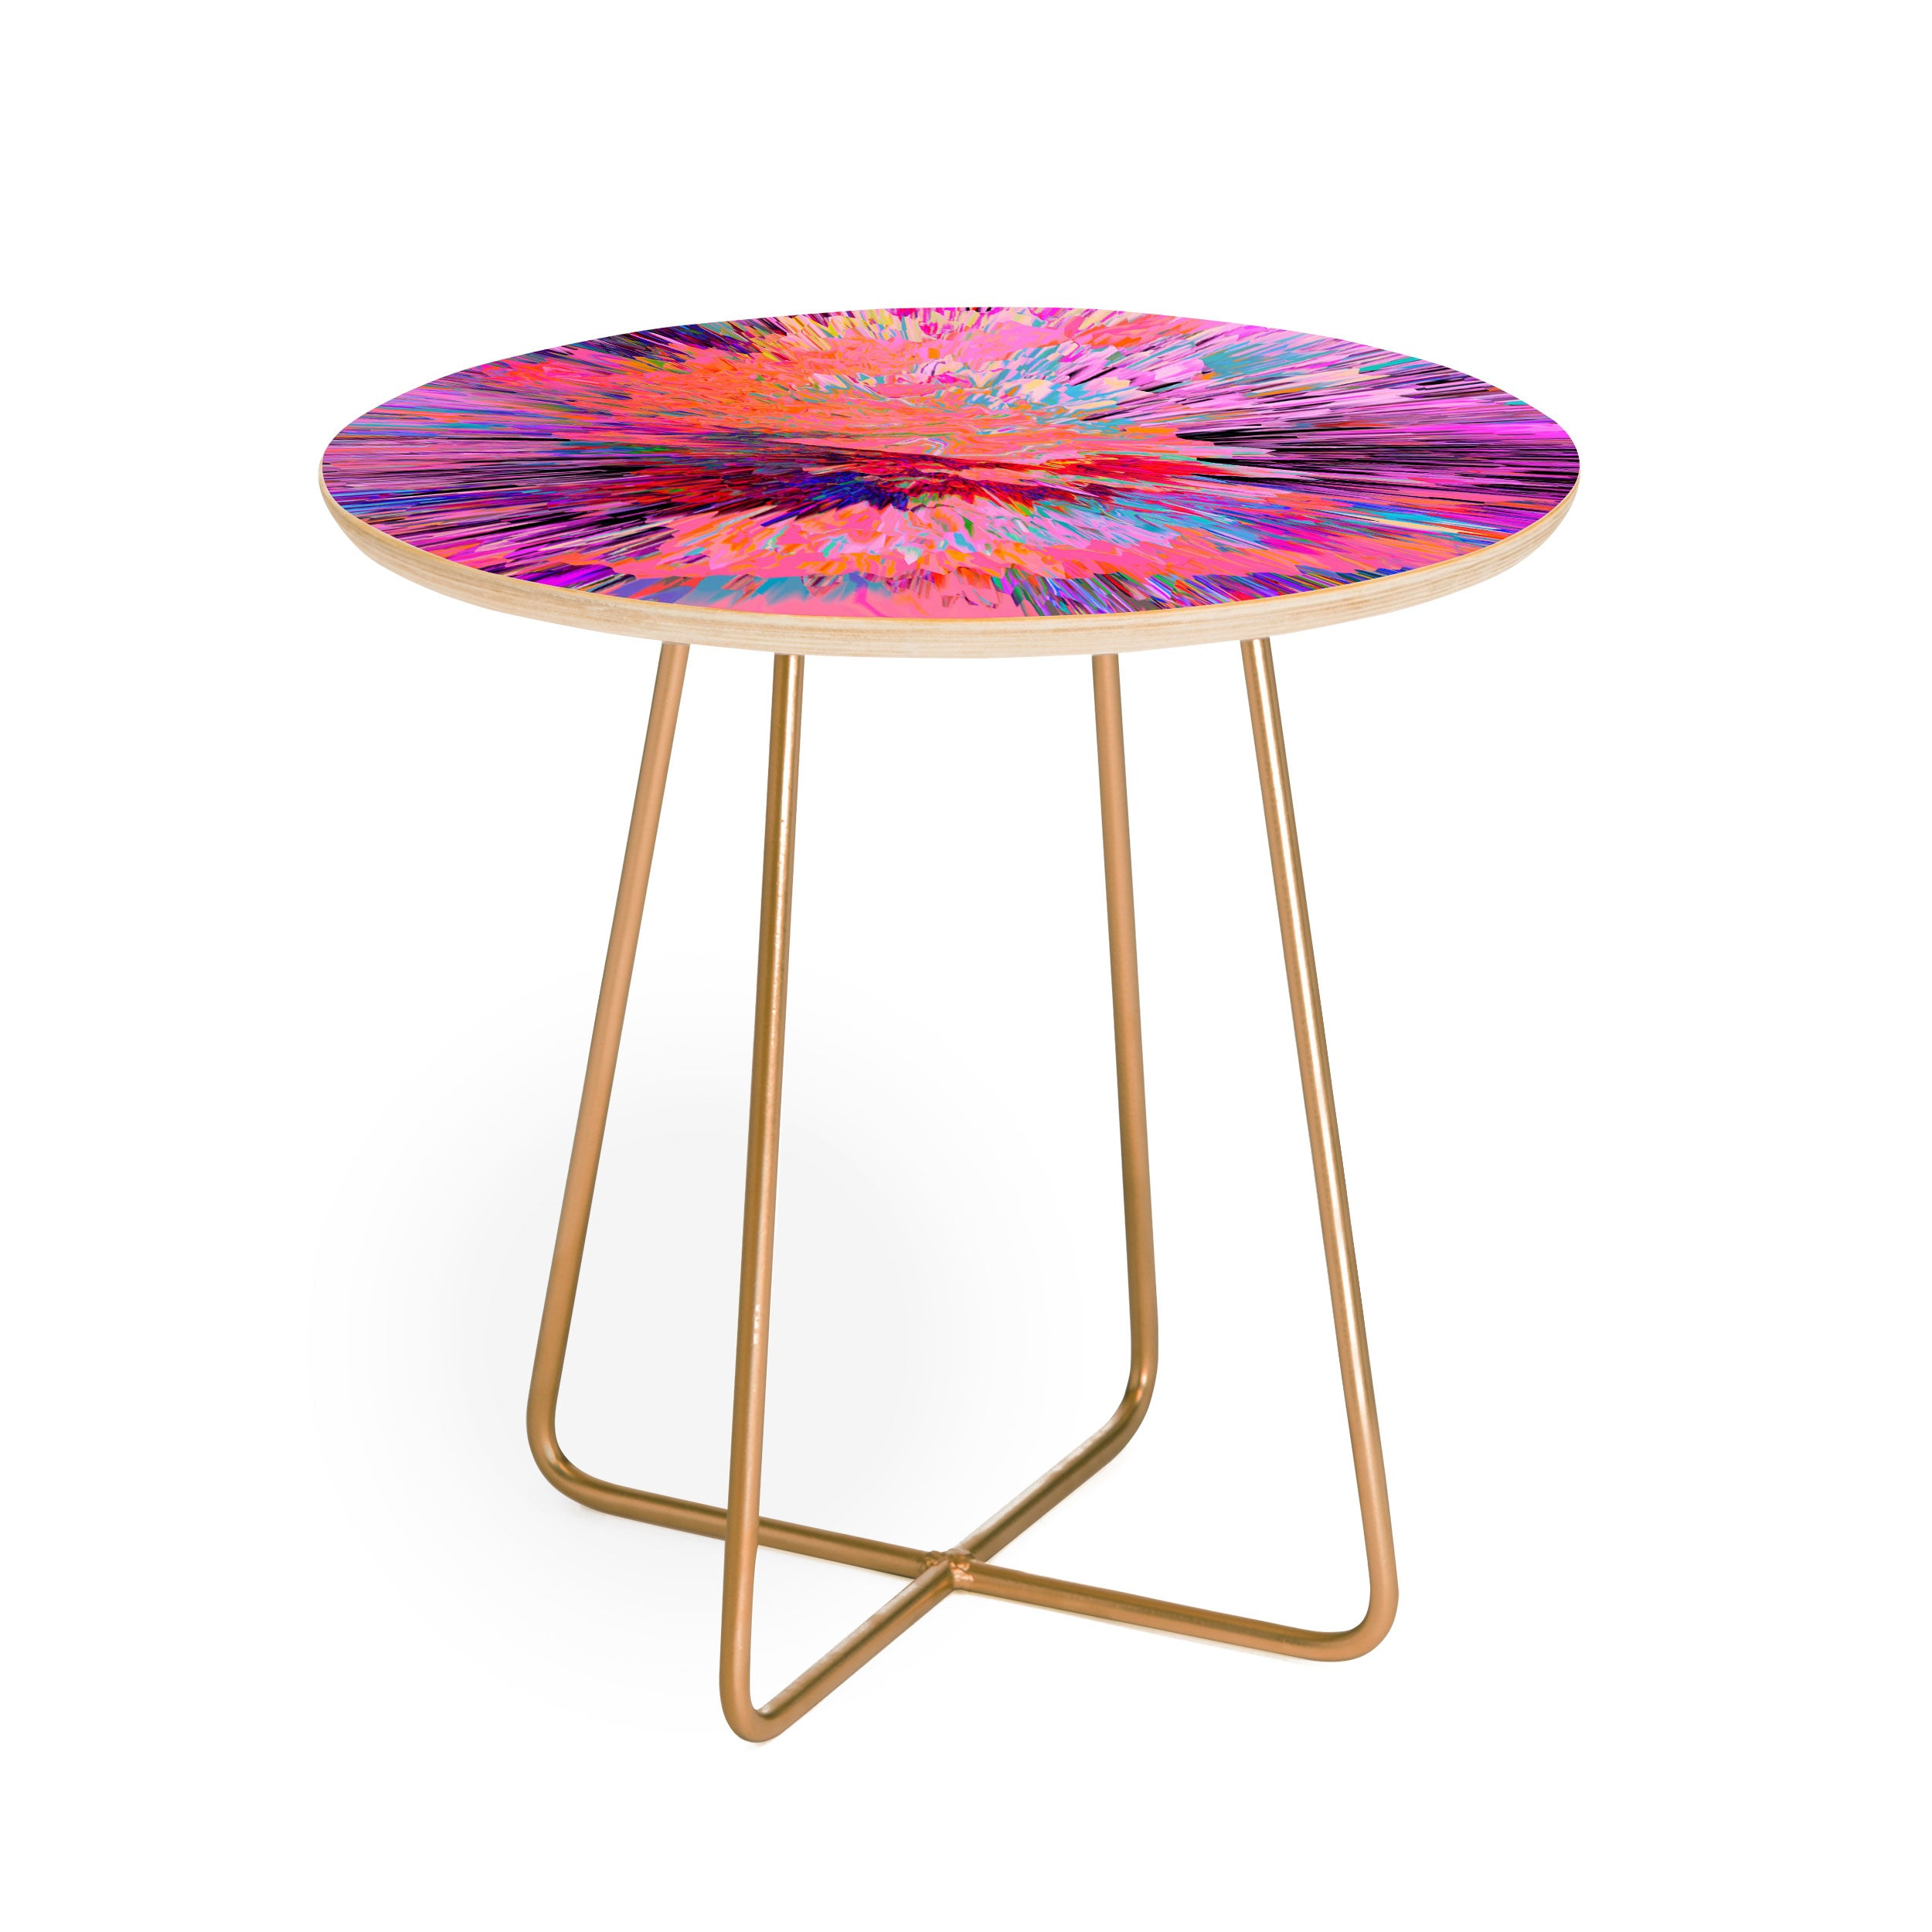 Adam Priester Color Explosion I Round Side Table